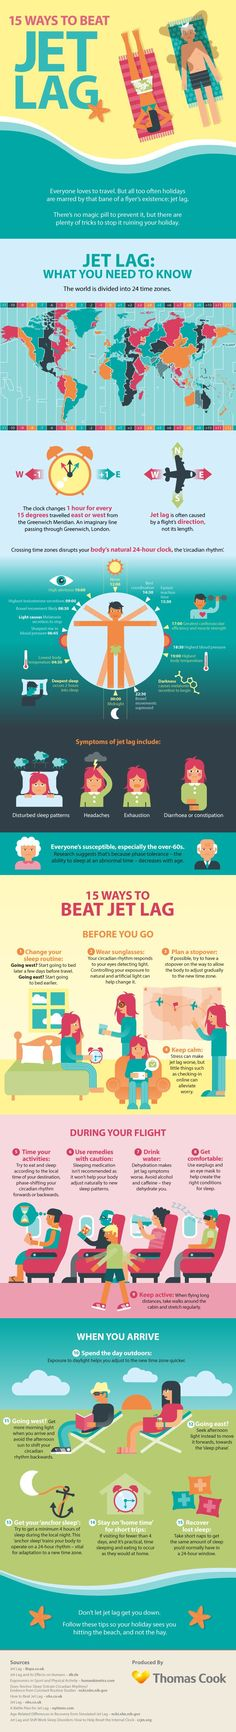 Jetlag can be an issue while traveling for long distances., but you can make it sweeter with these helpful tips, and, of course, if there is someone waiting for you:) join our community @ www.travelhostdate.com